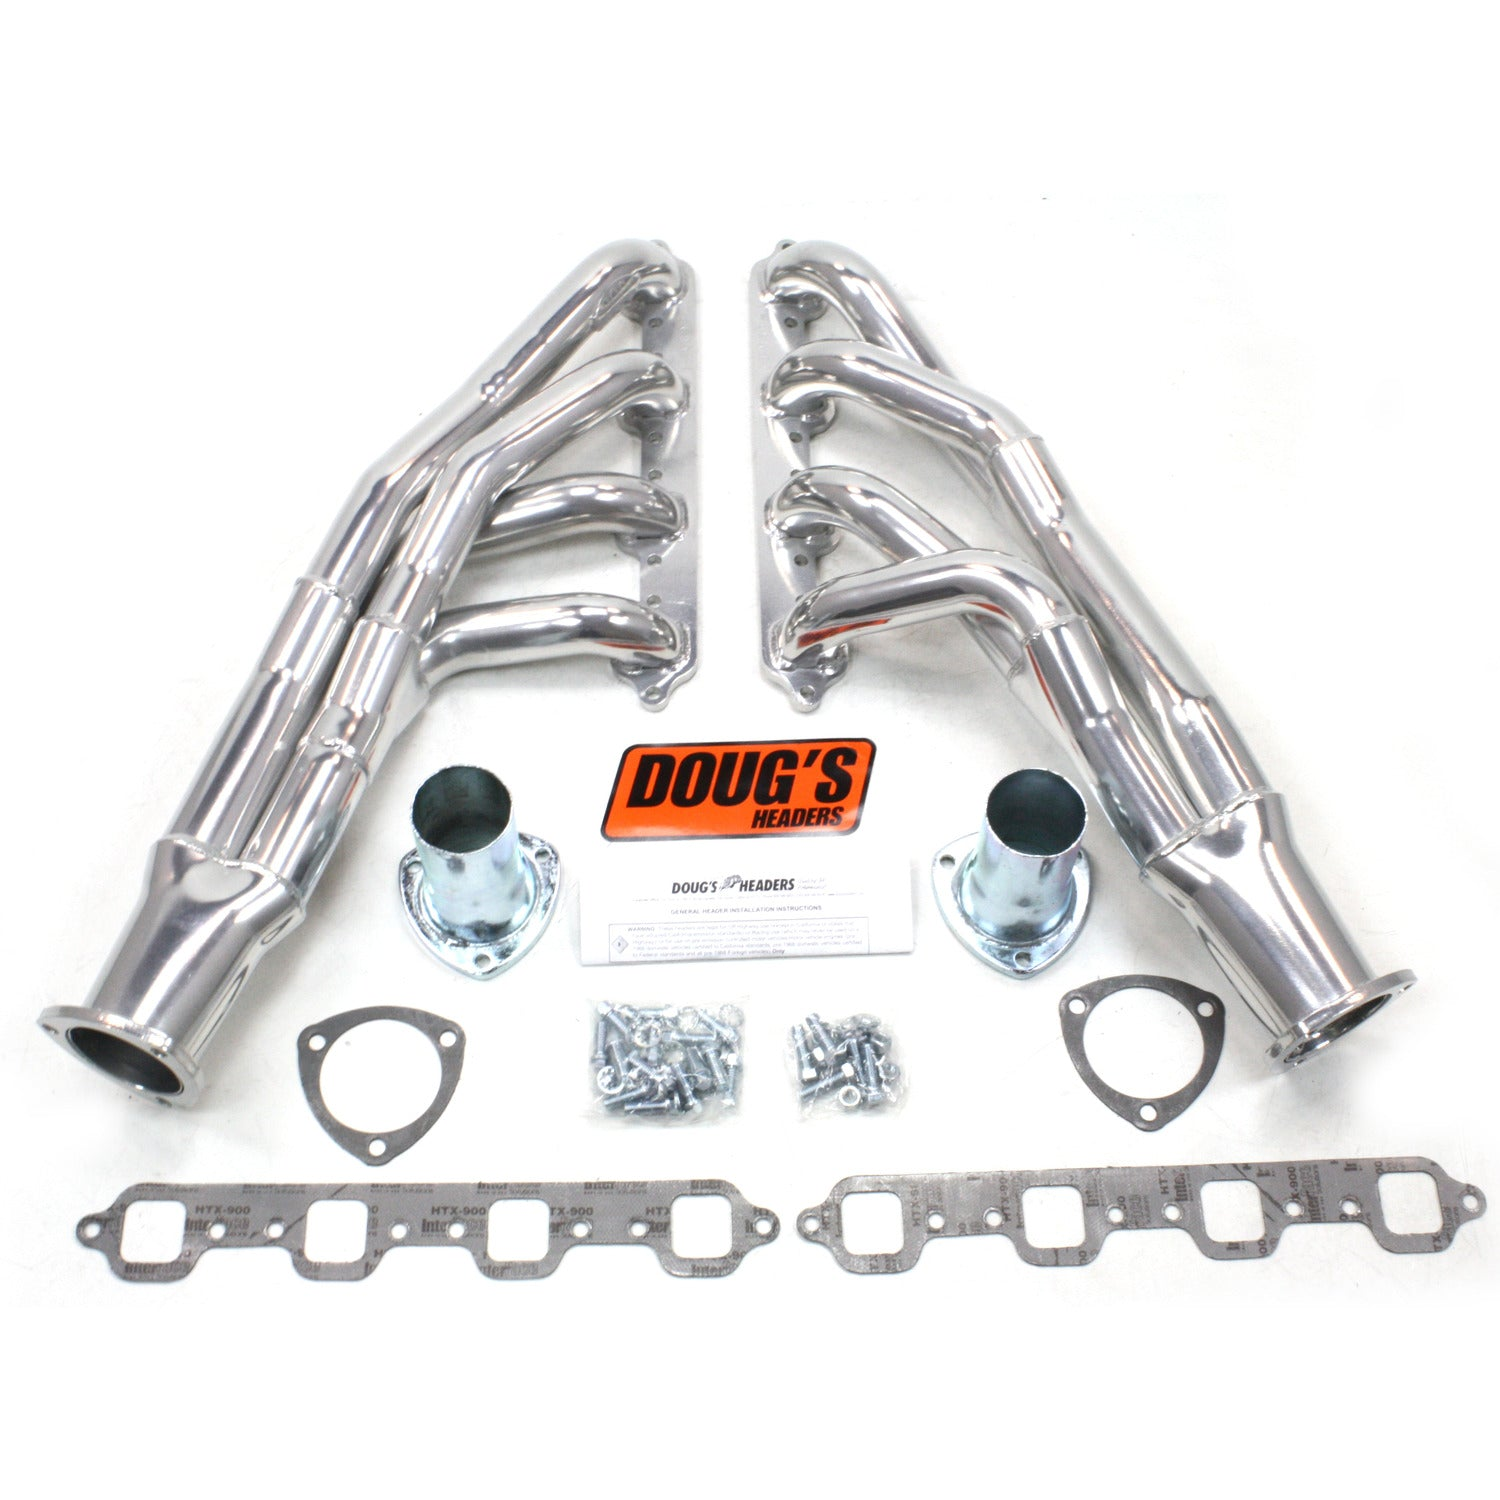 "Doug's Headers D669Y-1 1 3/4"" Tri-Y Header Ford Mustang 351W 67-70 Metallic Ceramic Coating"